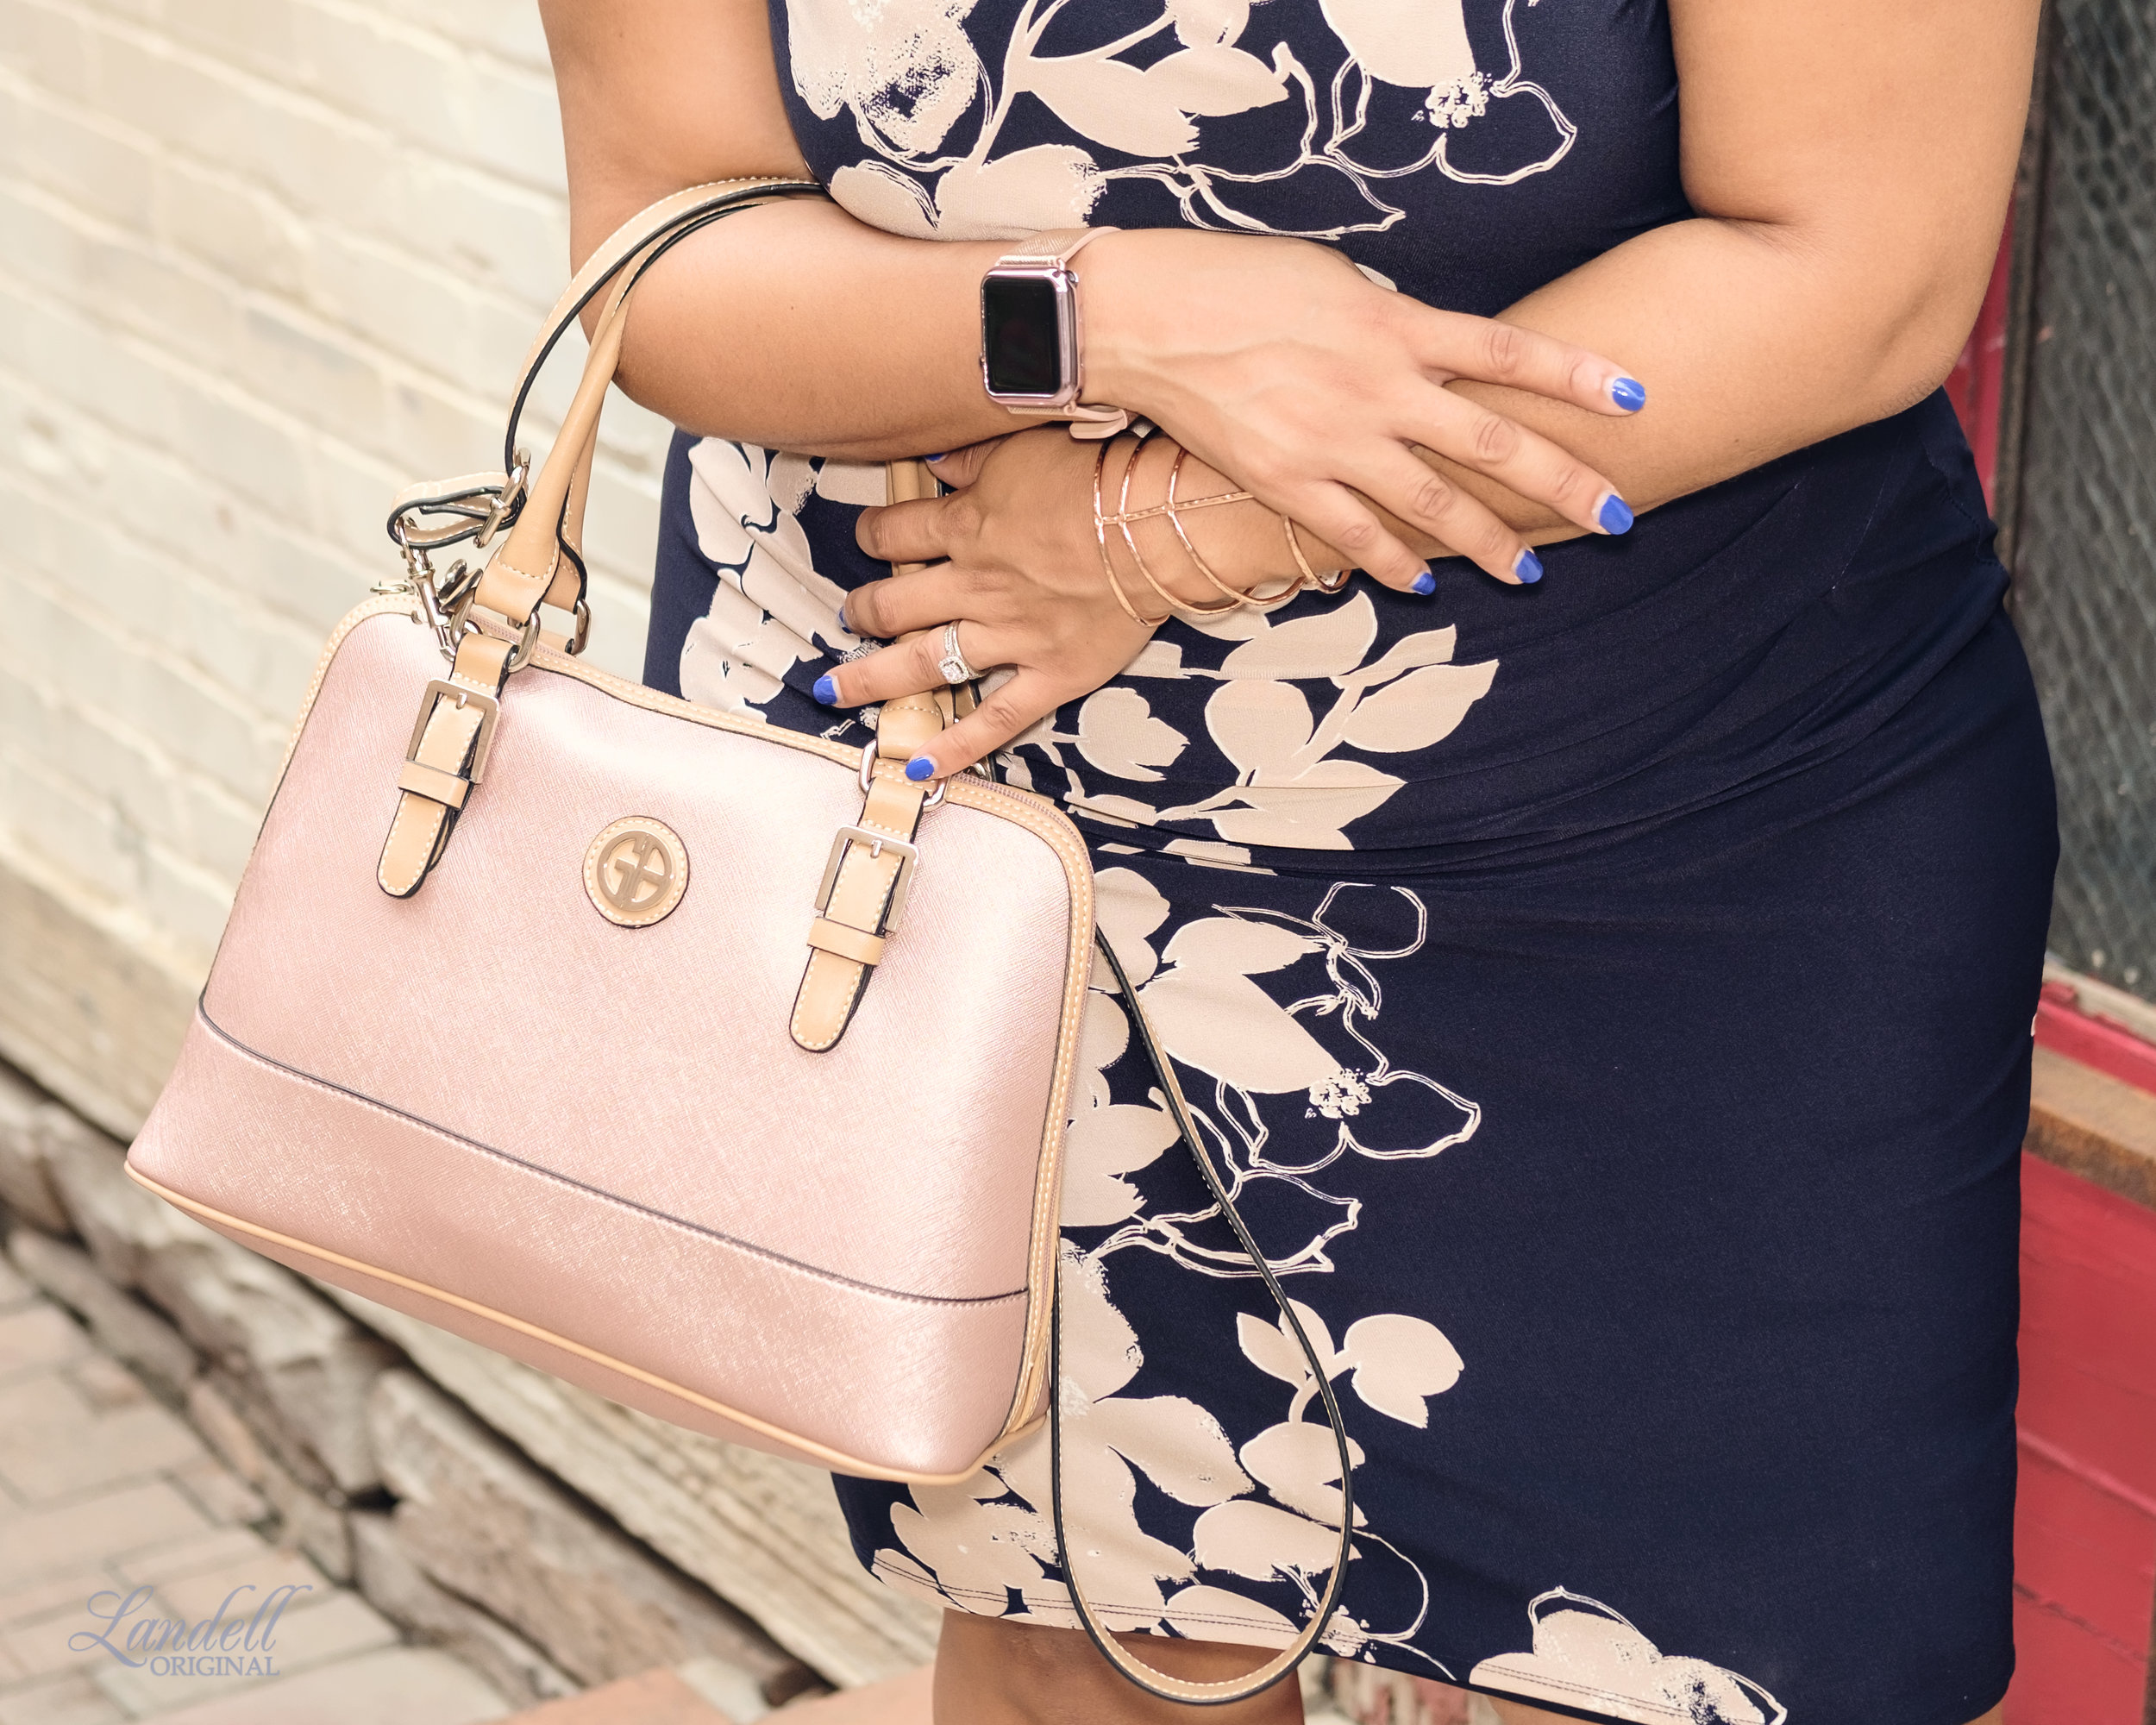 I saw this rose gold Giani Bernini bag at  Macy's  and fell in love with it. It's a perfect neutral color that goes with everything!